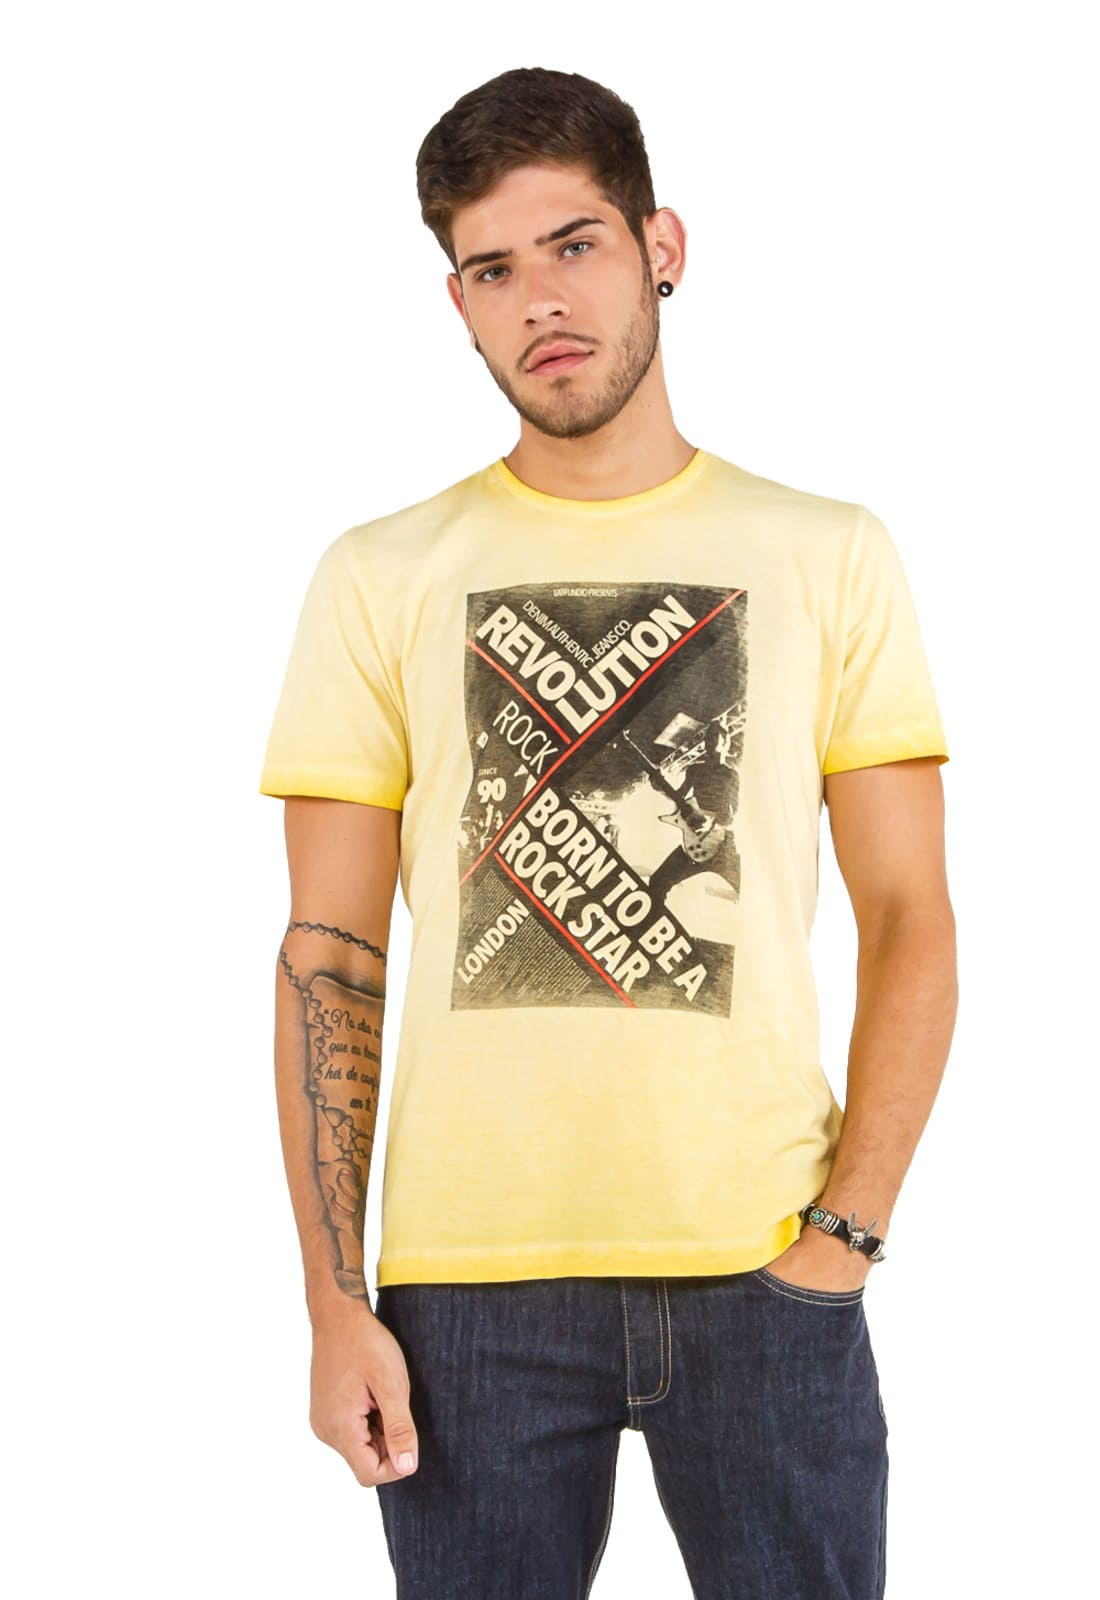 2 T-shirts Masculina - Estampa High School - Rock Star